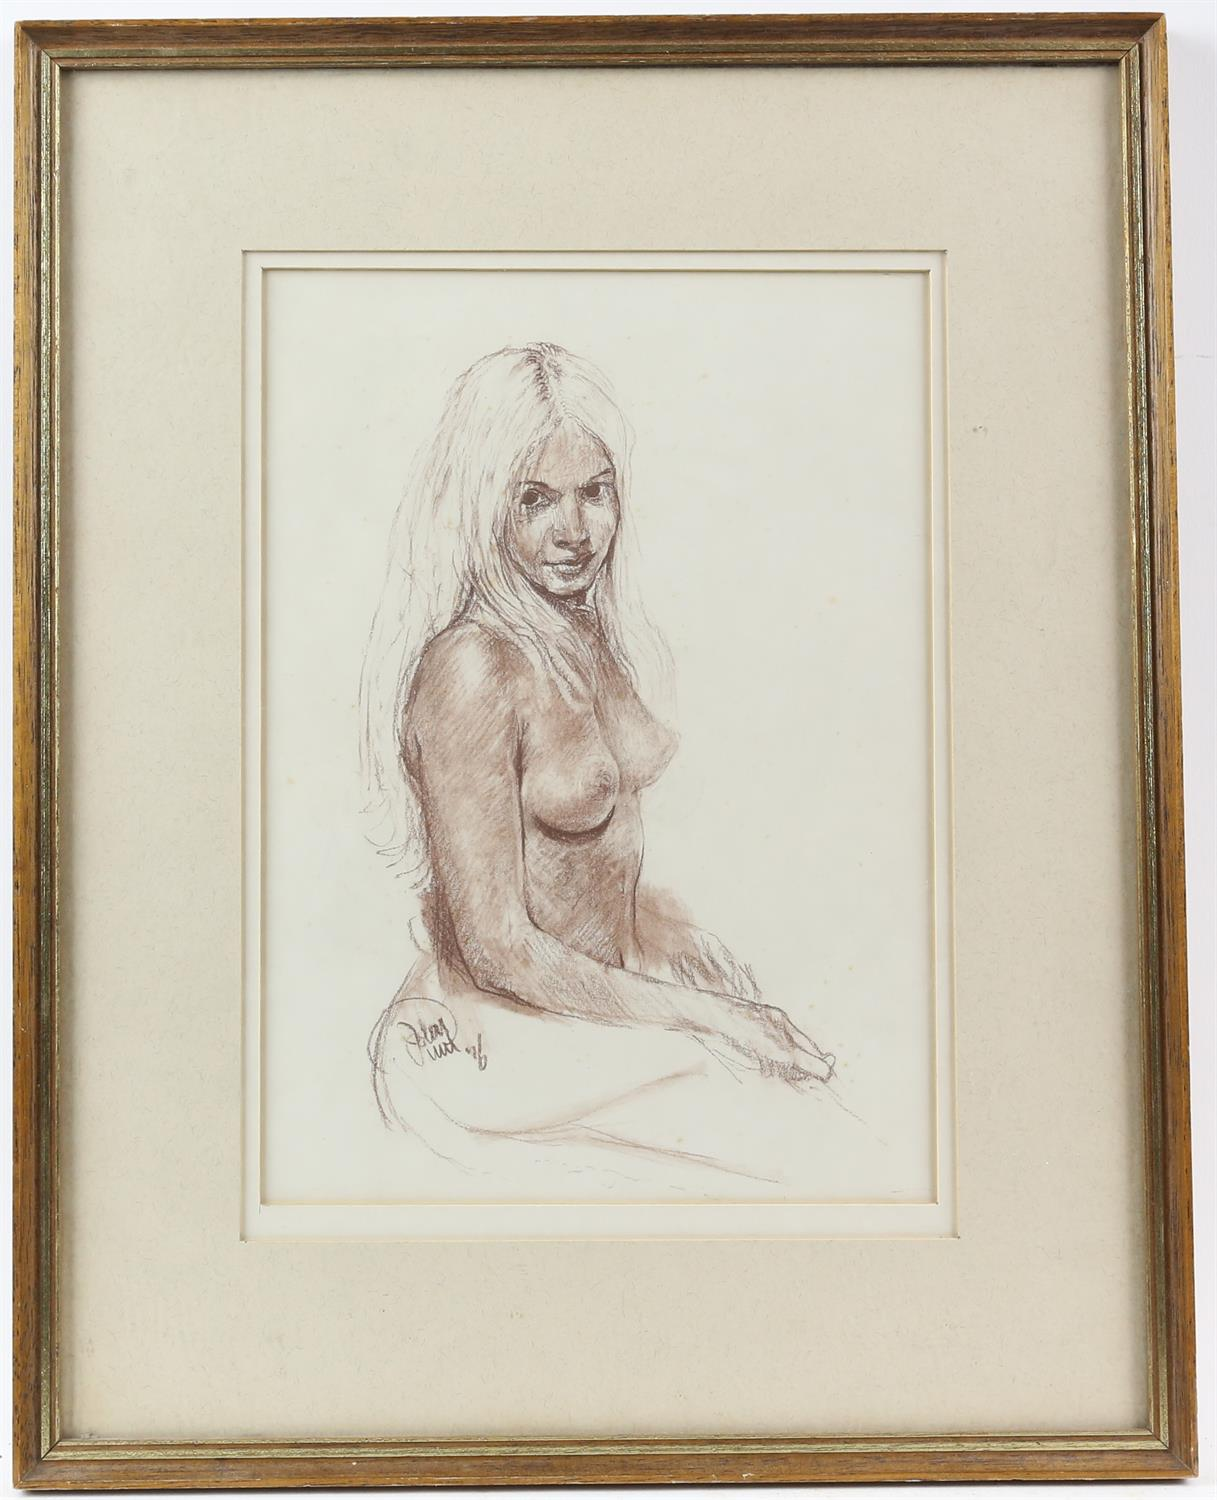 John Uht (British, b. 1924). 'Blonde Seated Nude'. Pastel 1976. Signed and dated lower left. - Image 2 of 3